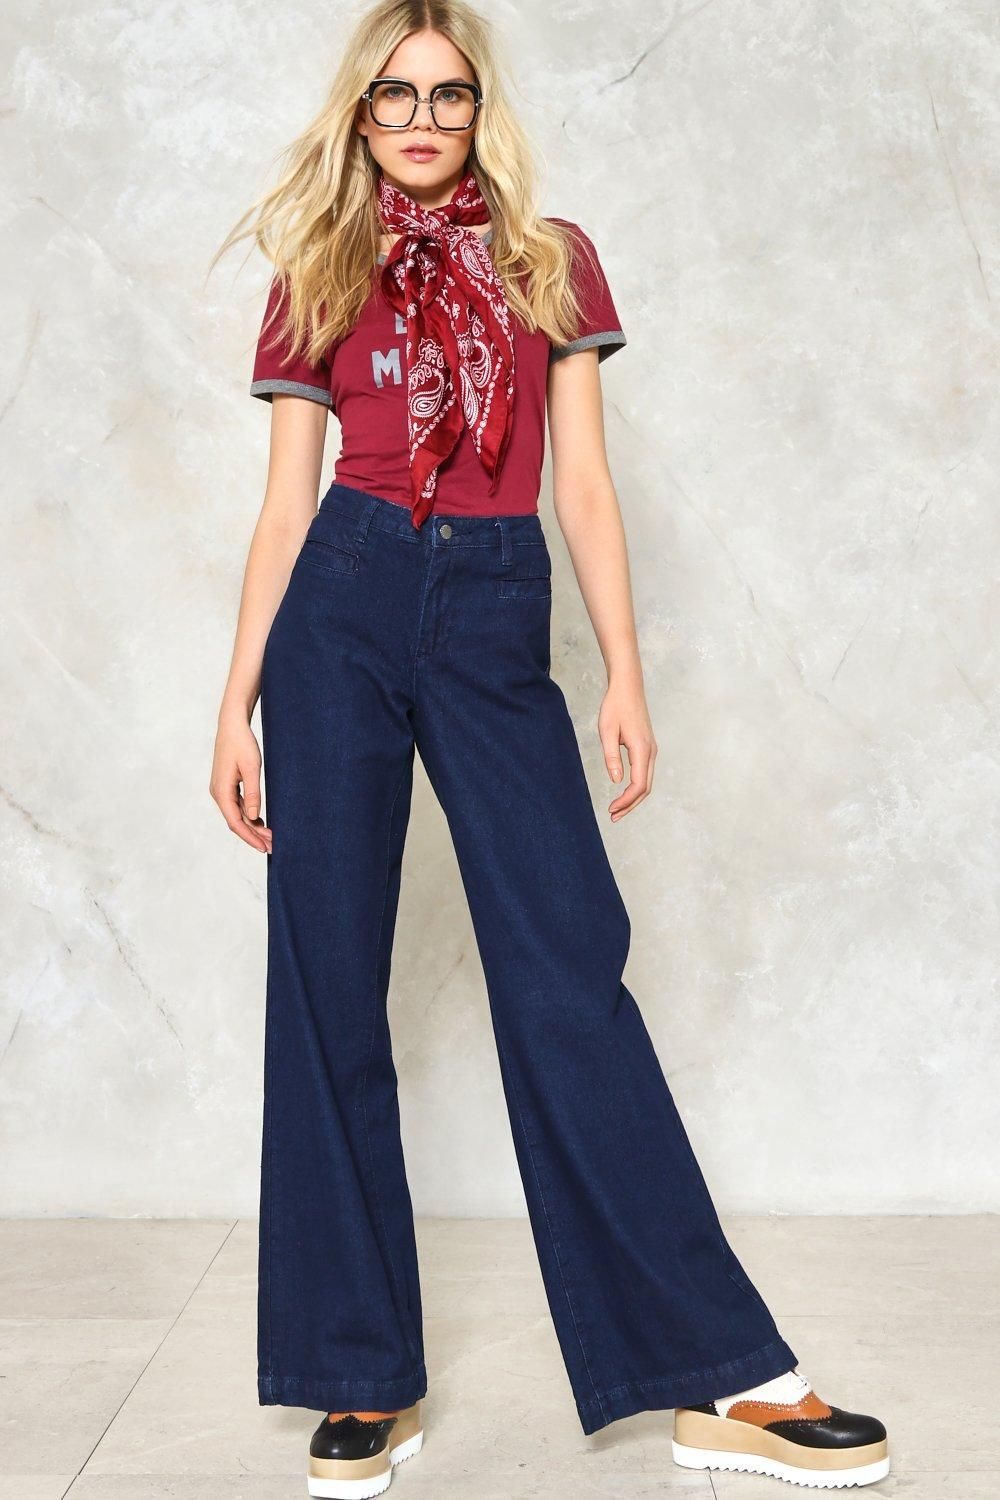 Buy How to wide wear leg denim trousers picture trends